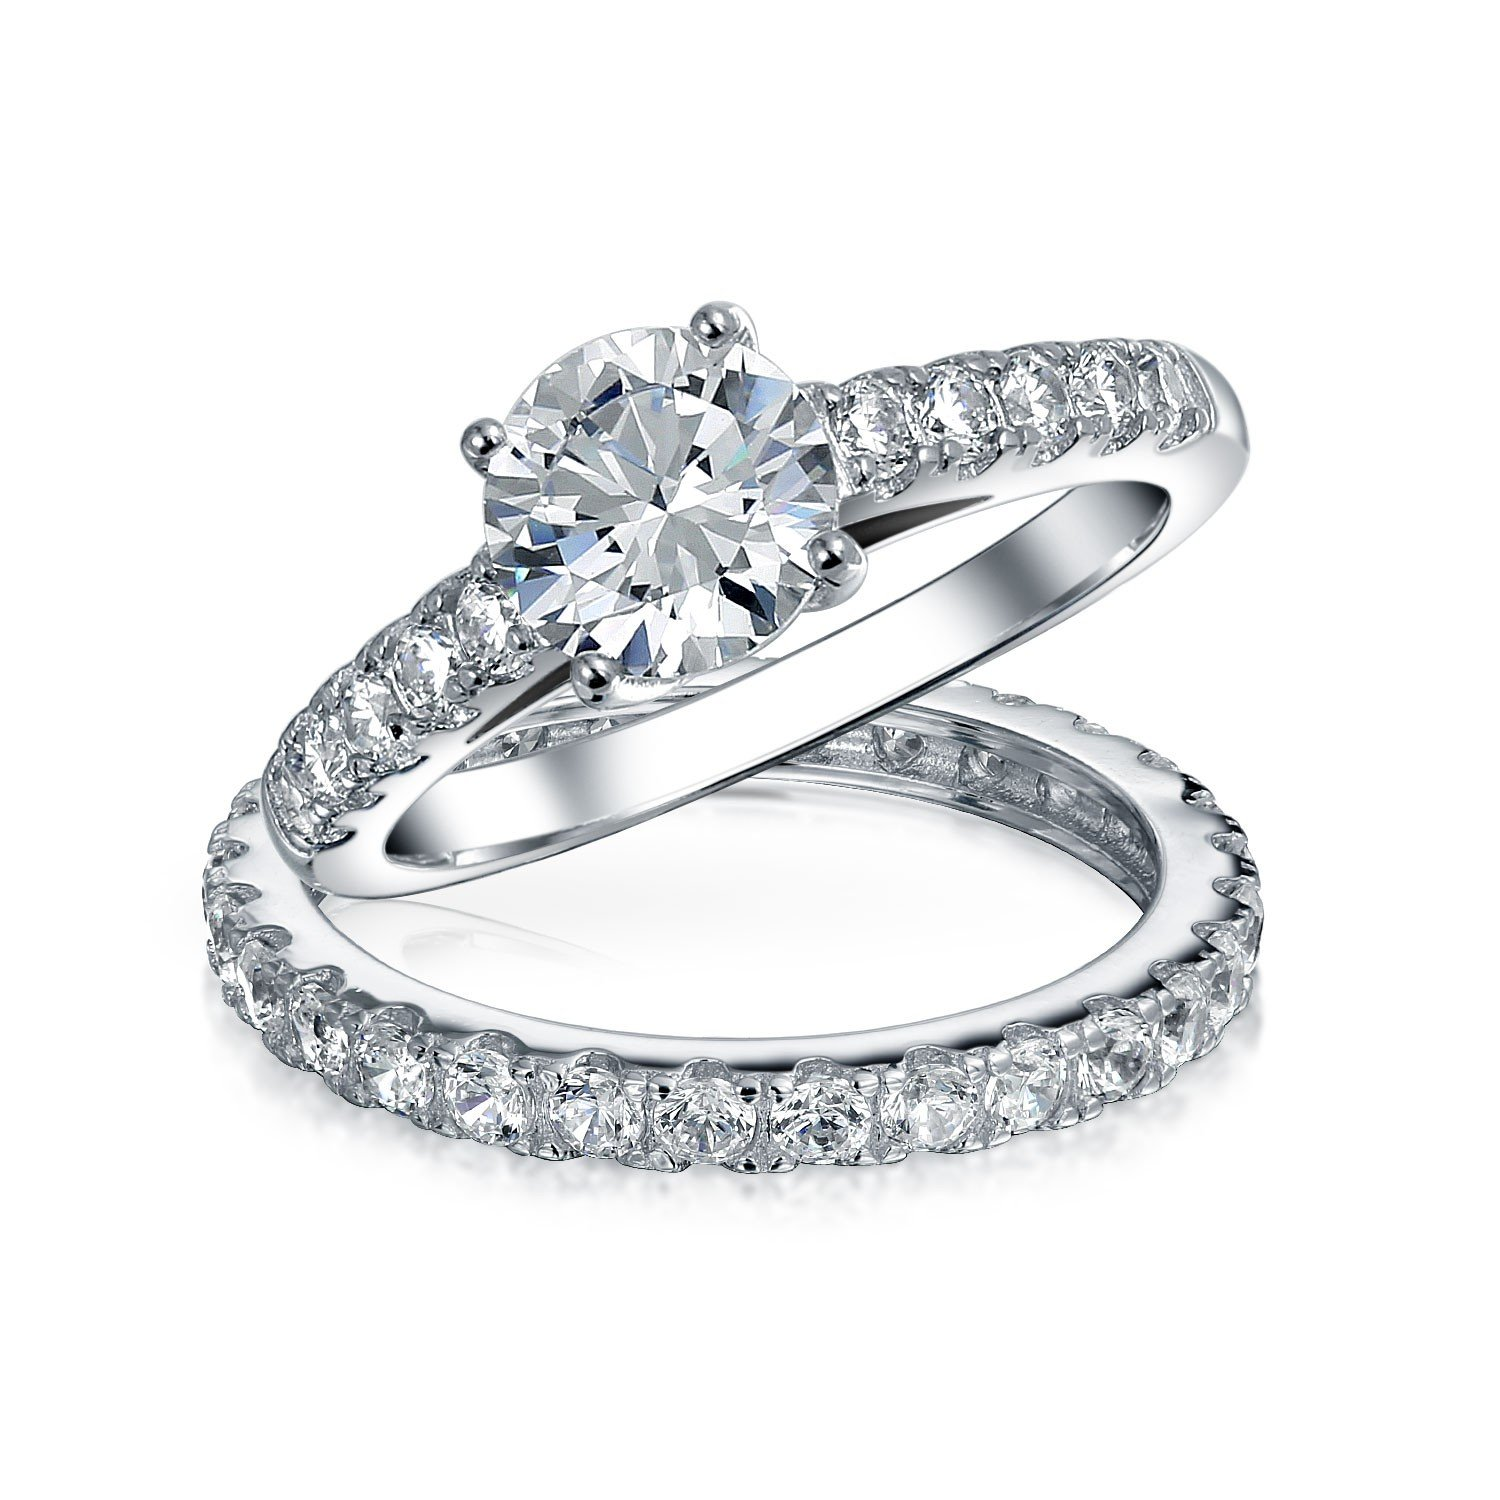 10 Things Nobody Tells You About Buying an Engagement Ring